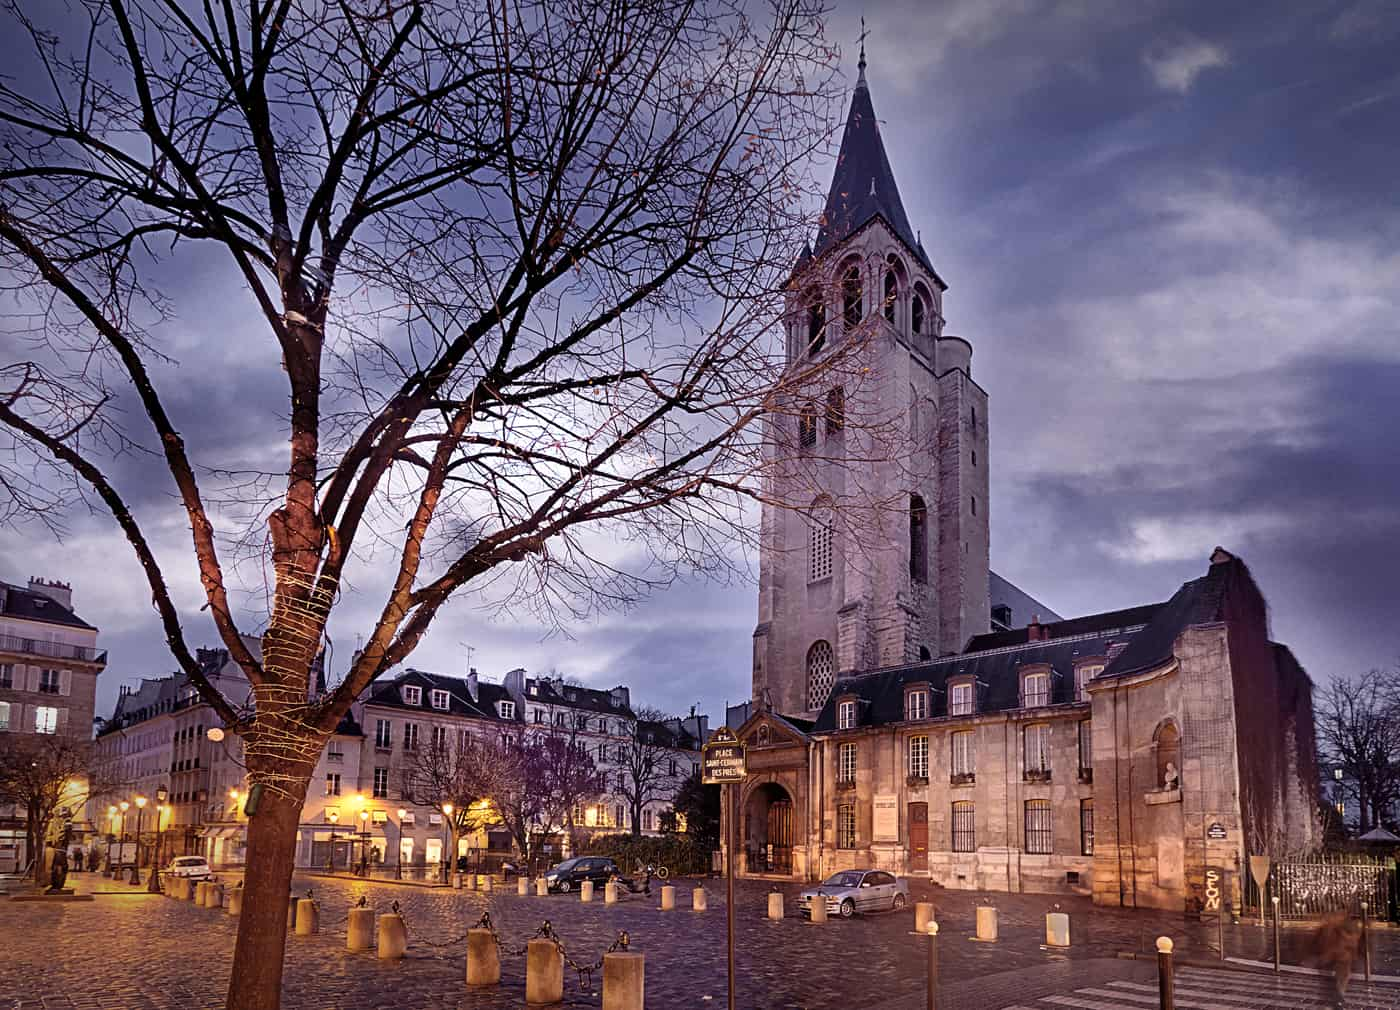 Night view of Saint Germain des Prés Church